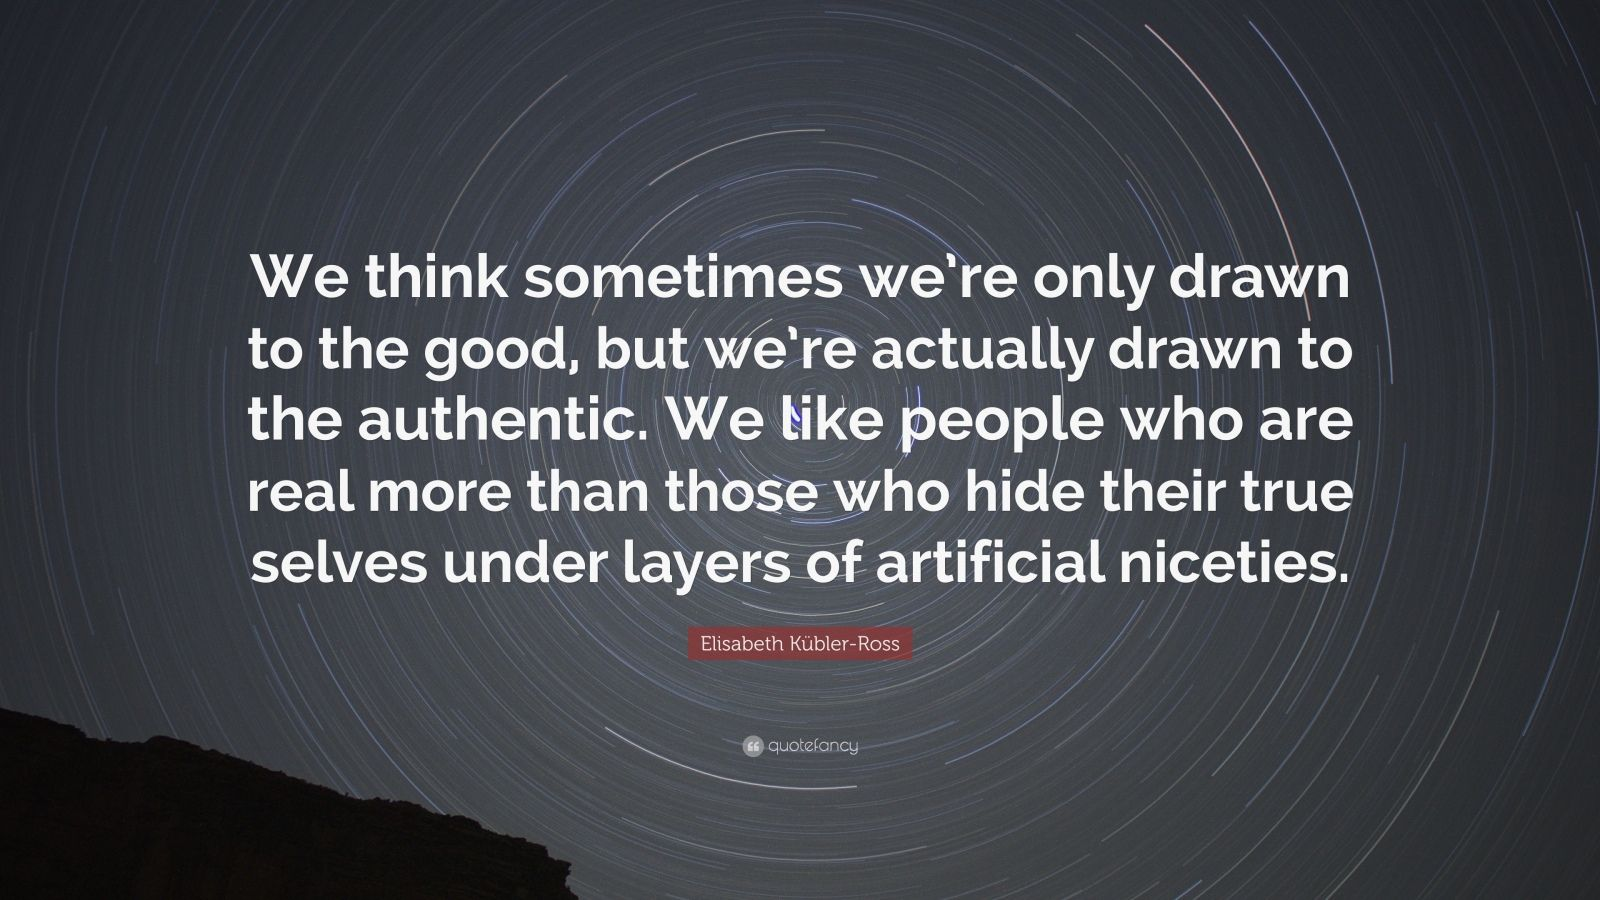 """Elisabeth Kübler-Ross Quote: """"We think sometimes we're only drawn to the good, but we're actually drawn to the authentic. We like people who are real more than those who hide their true selves under layers of artificial niceties."""""""